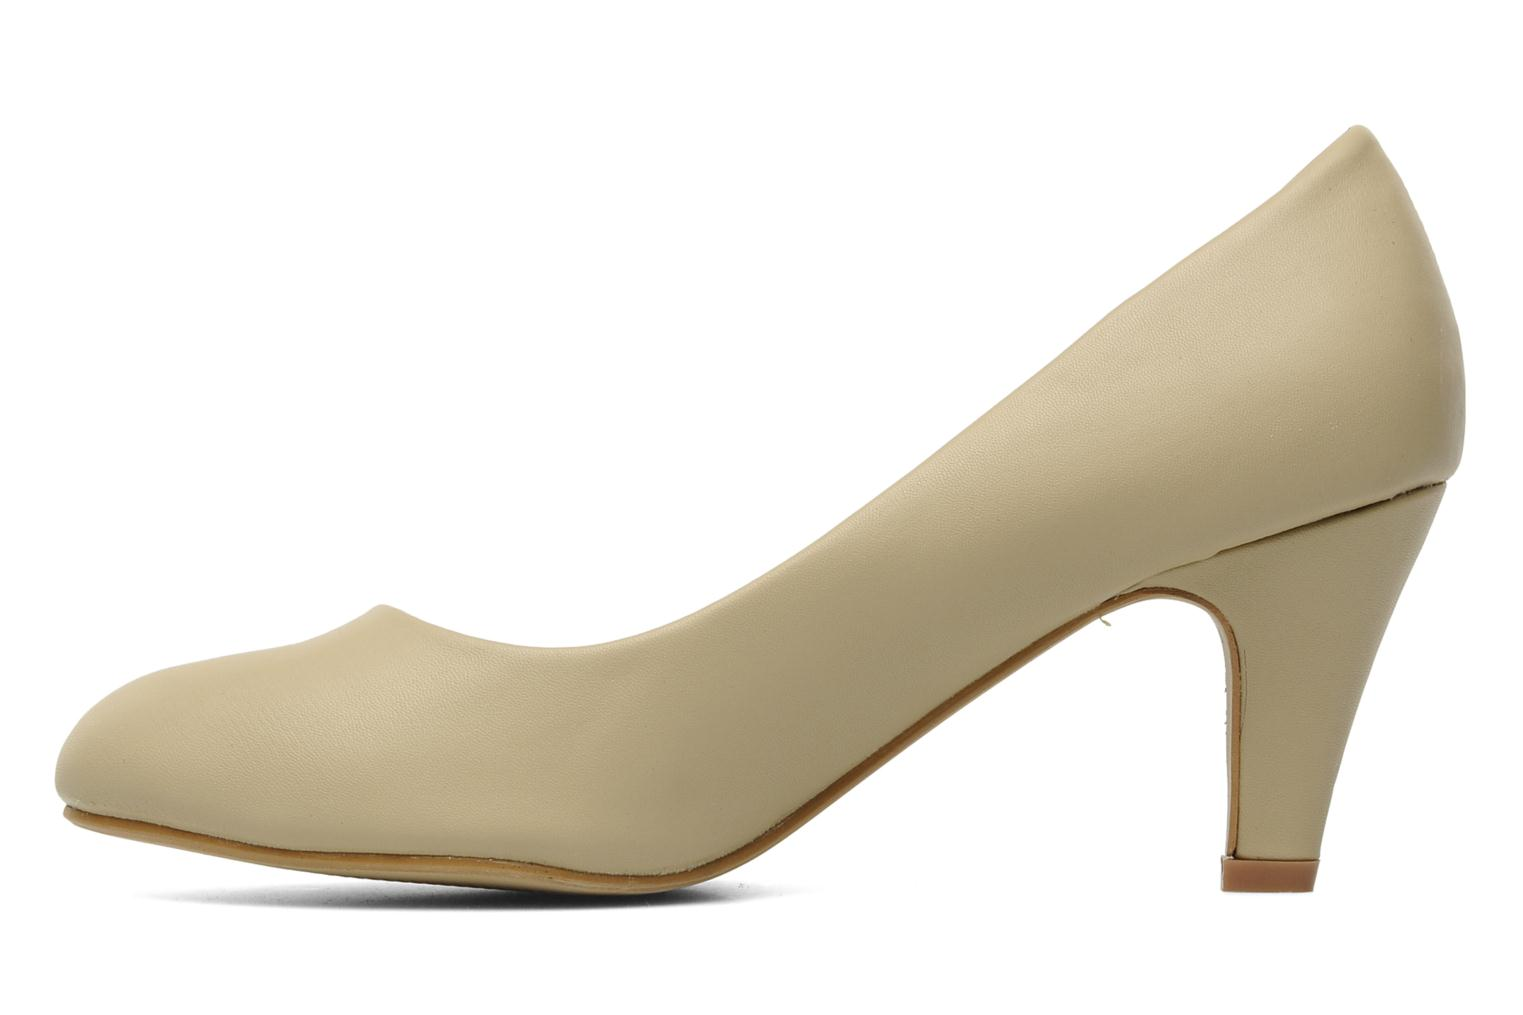 Pumps Eclipse Escarpin Moyen Talon Beige voorkant